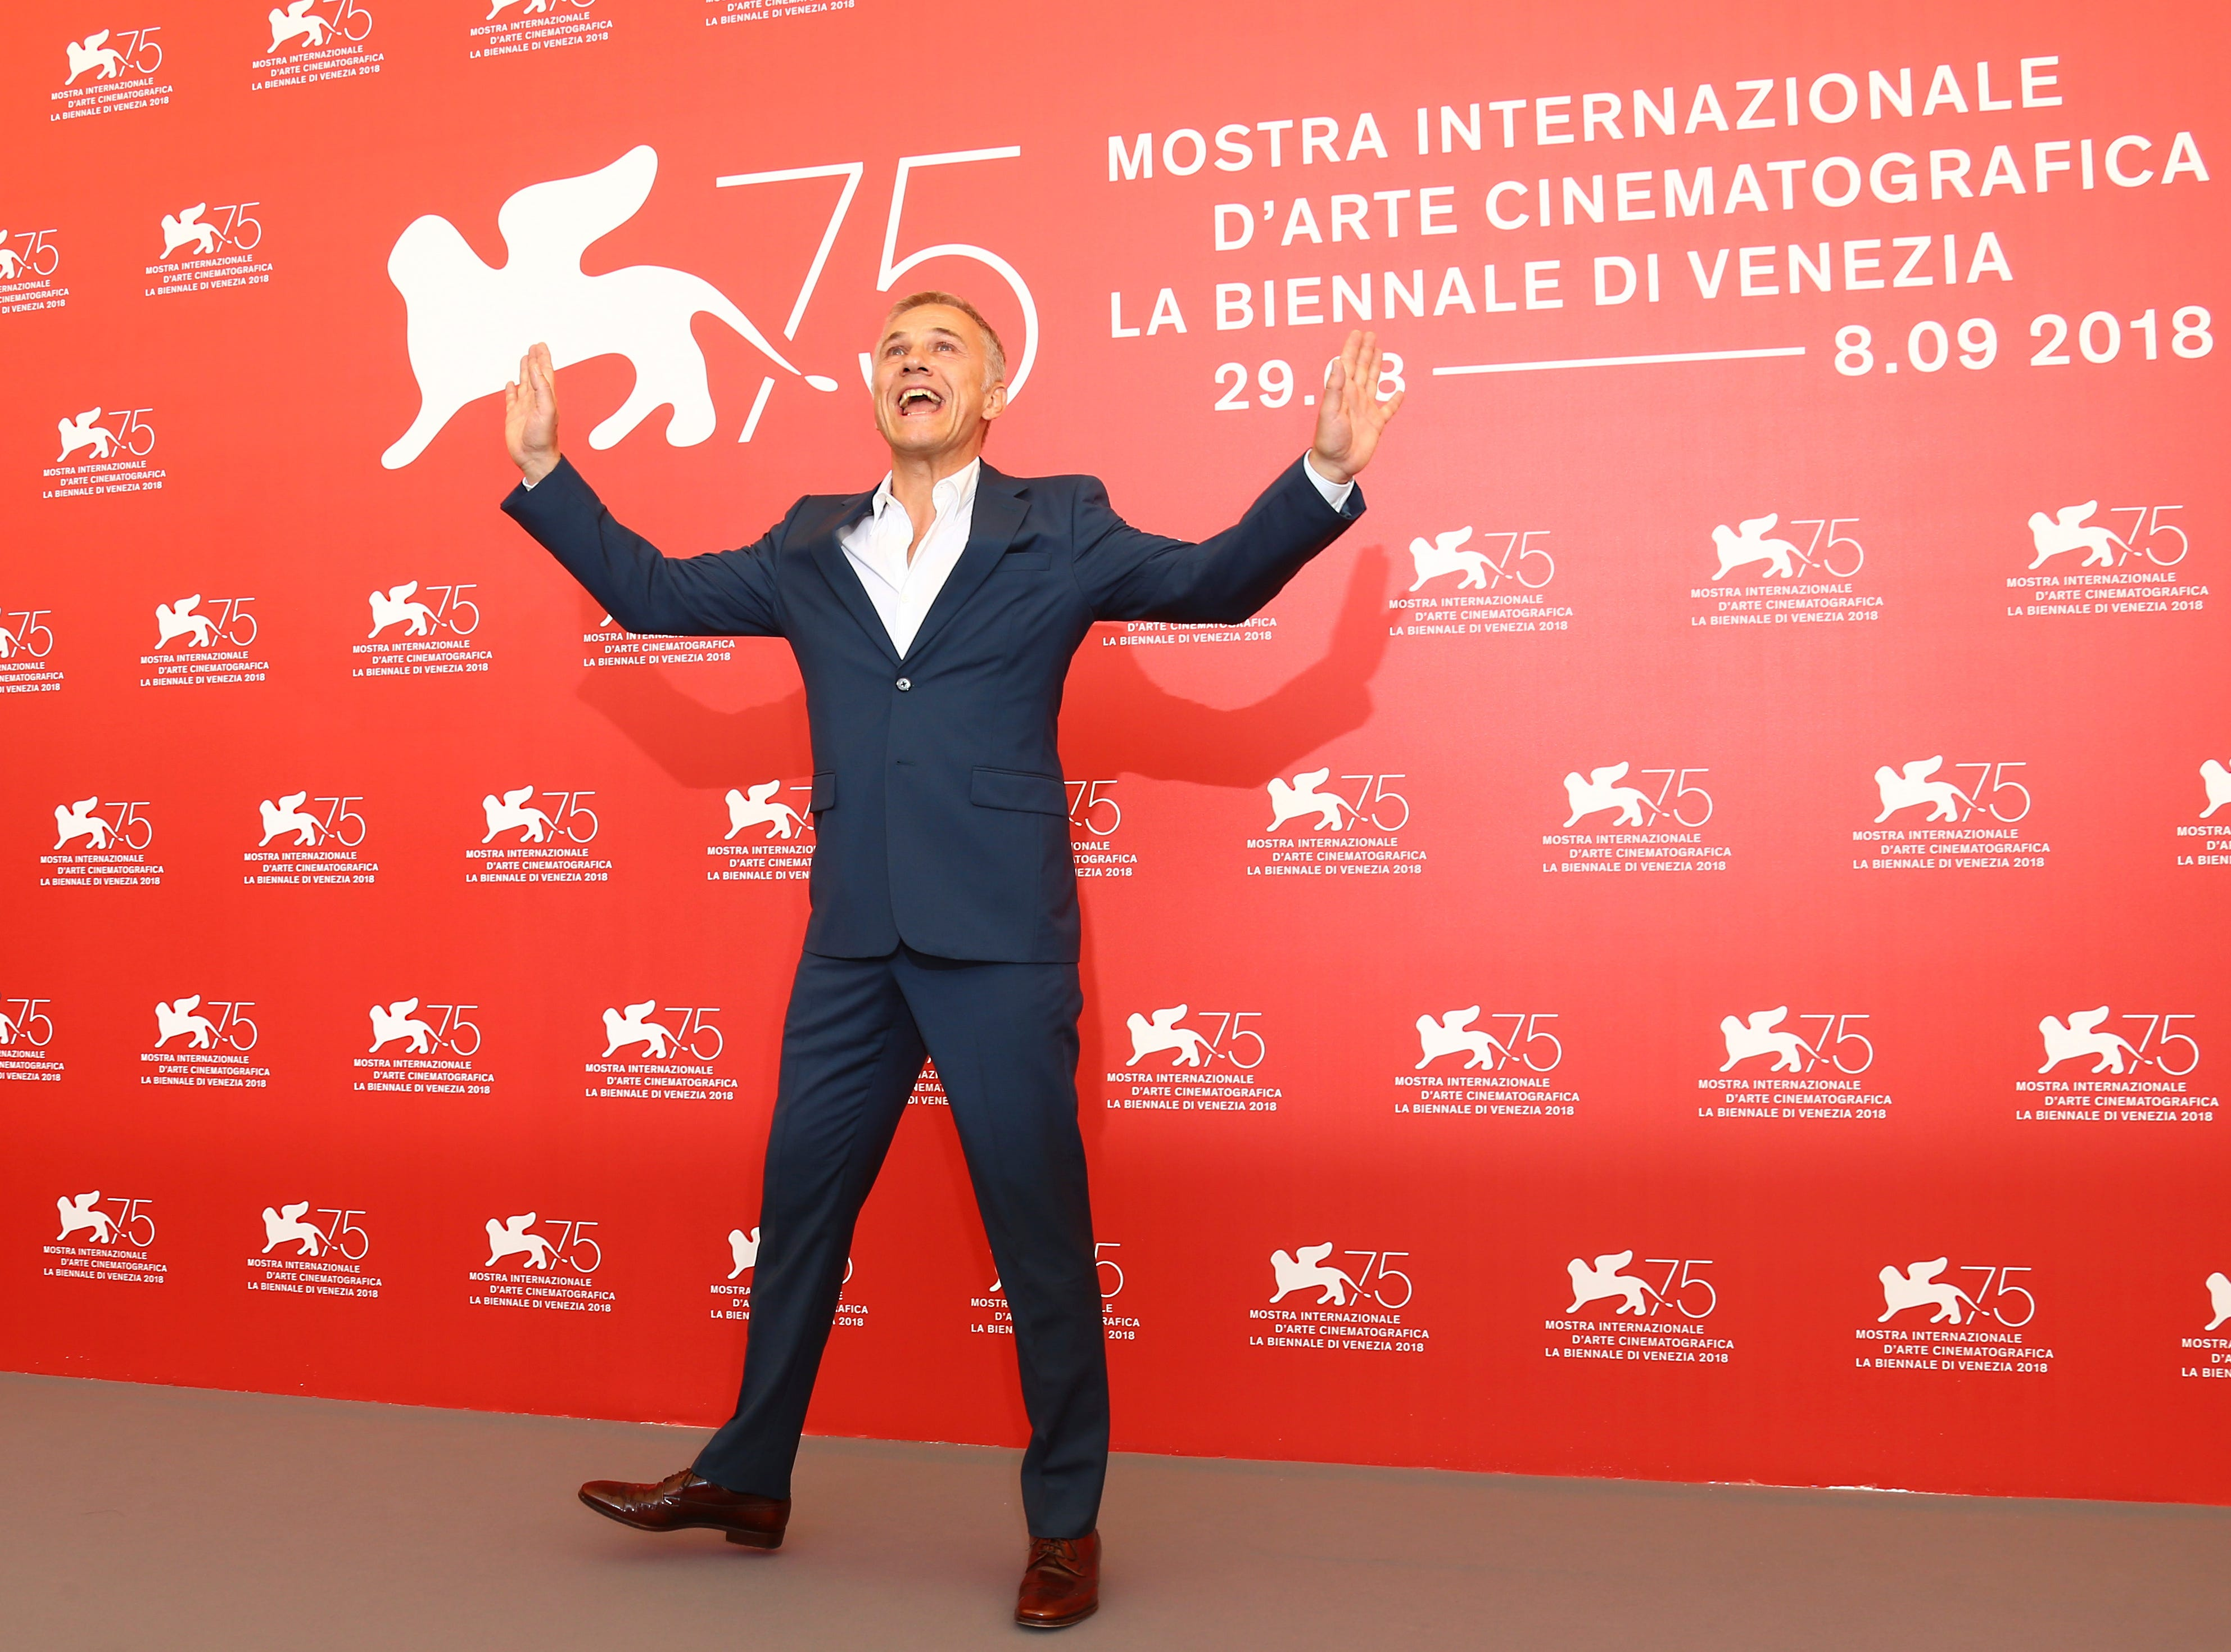 August 29: Christoph Waltz poses for photographers at the Venice Film Festival.